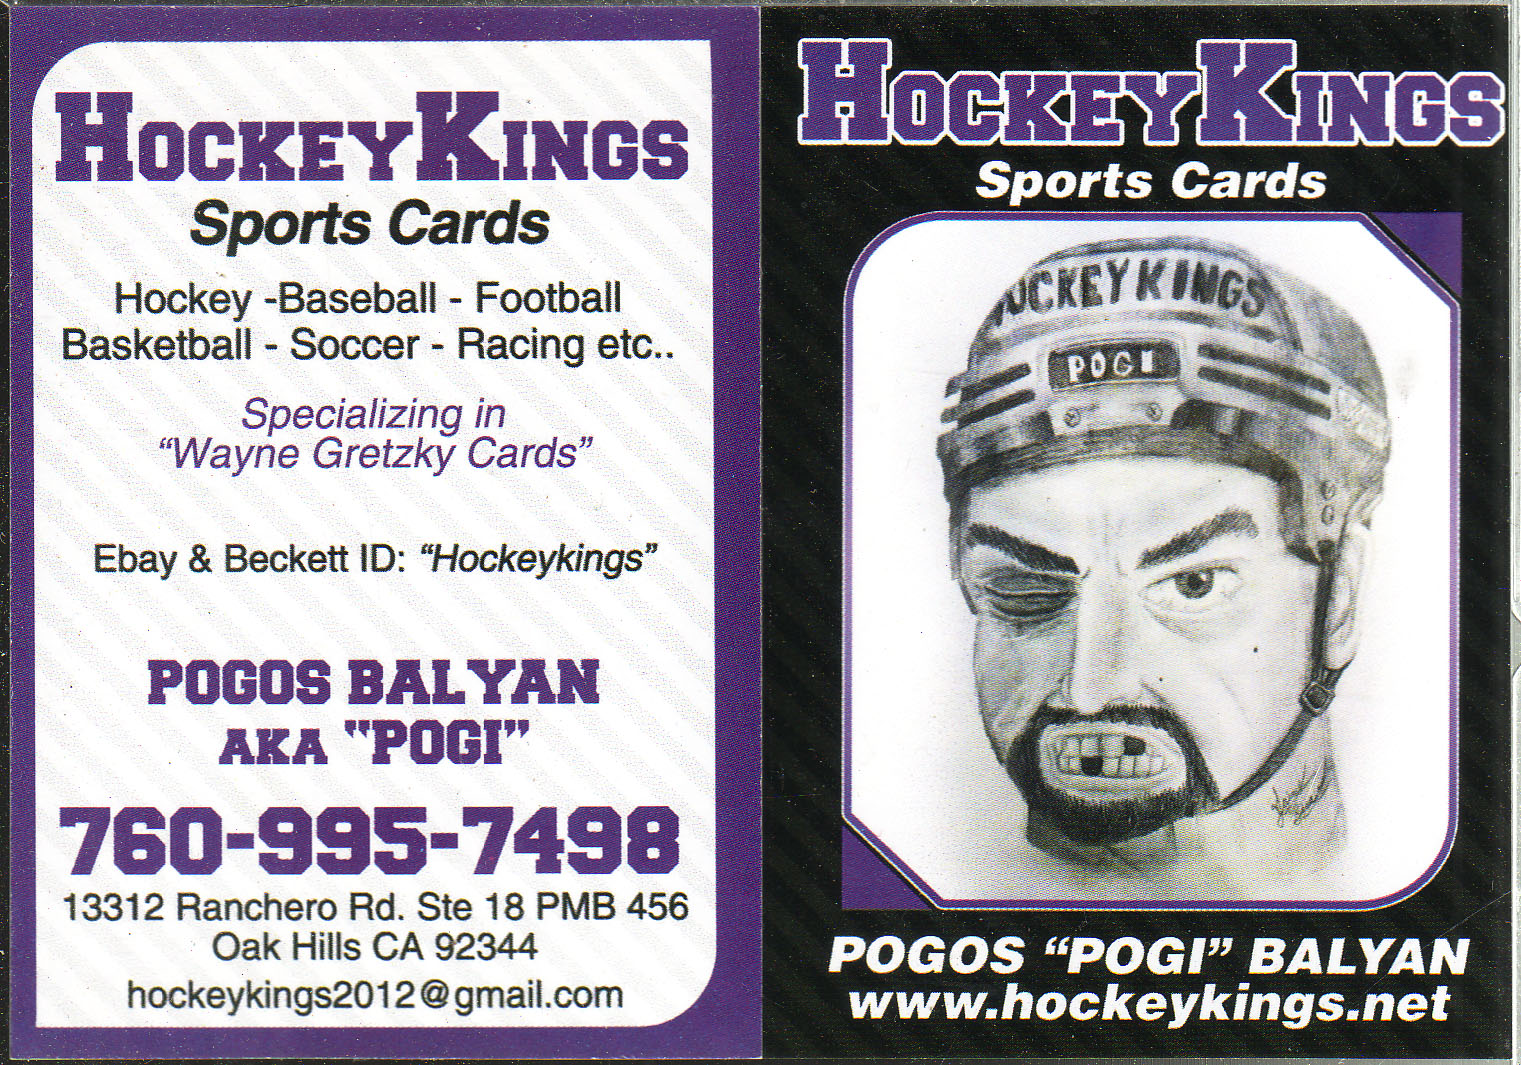 Hockeykings